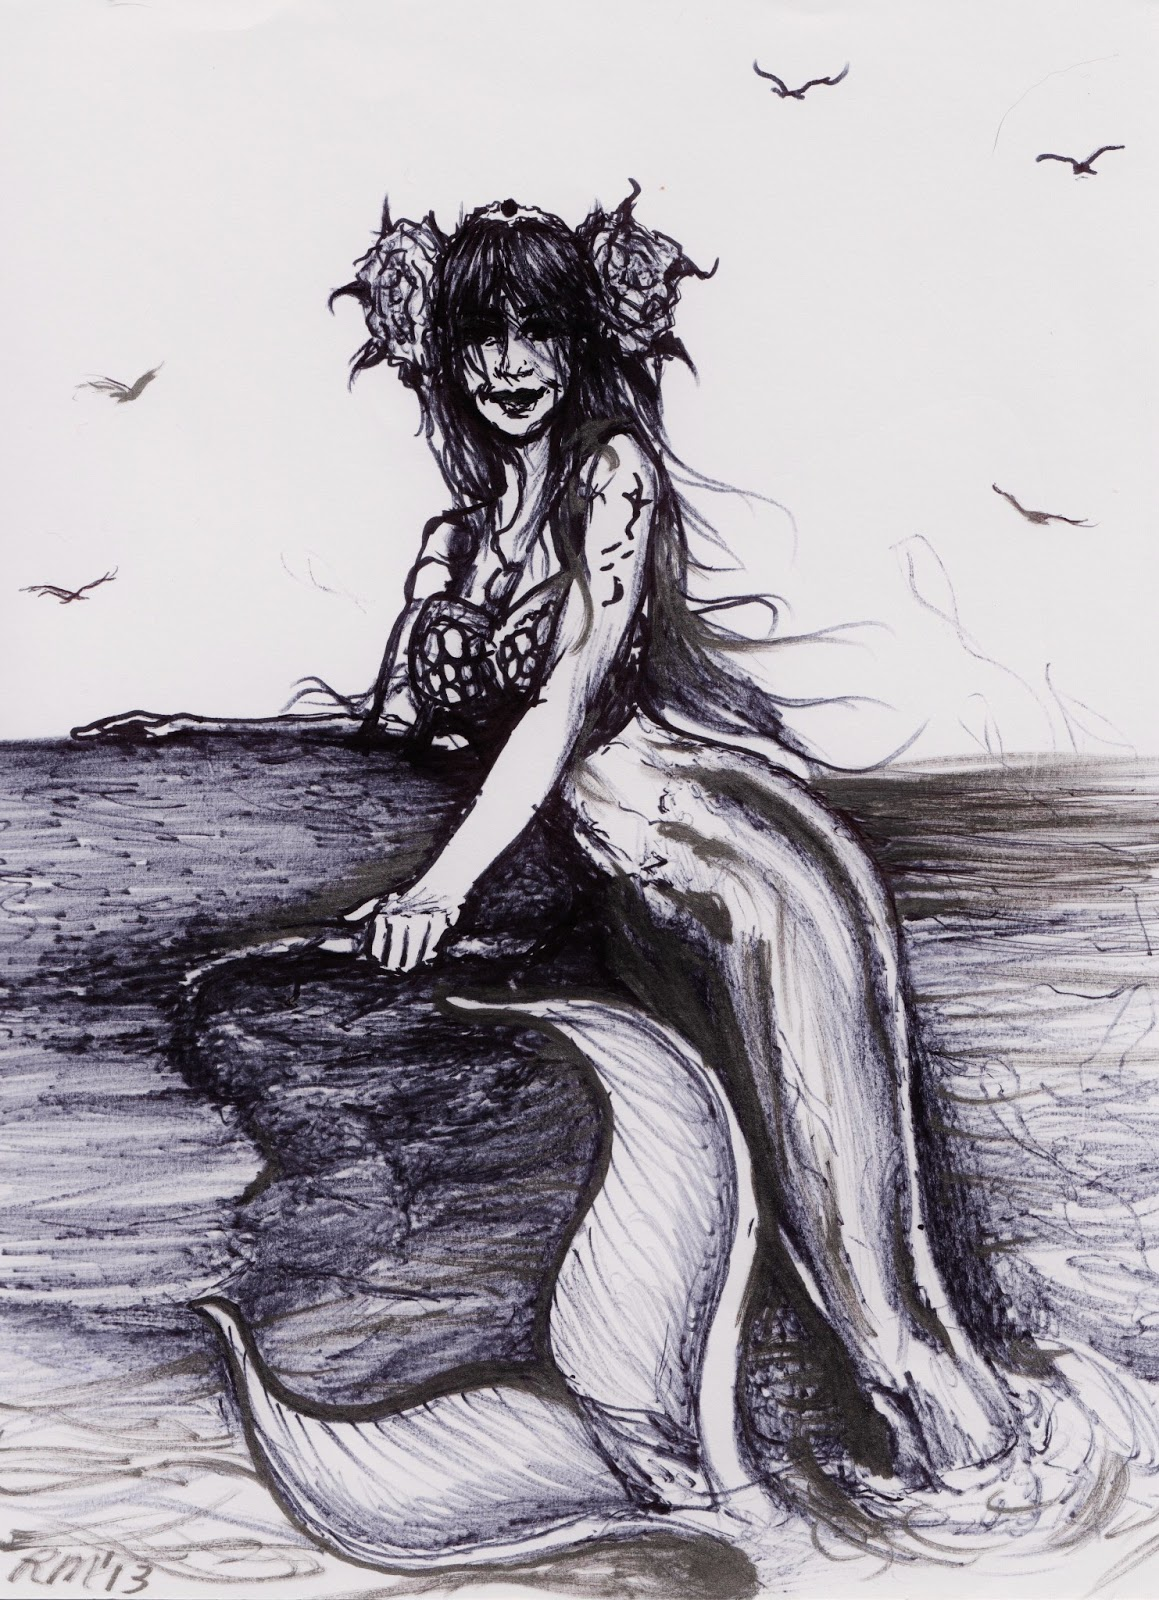 Alternate Visions: I Has a New Mermaid Drawing! :D